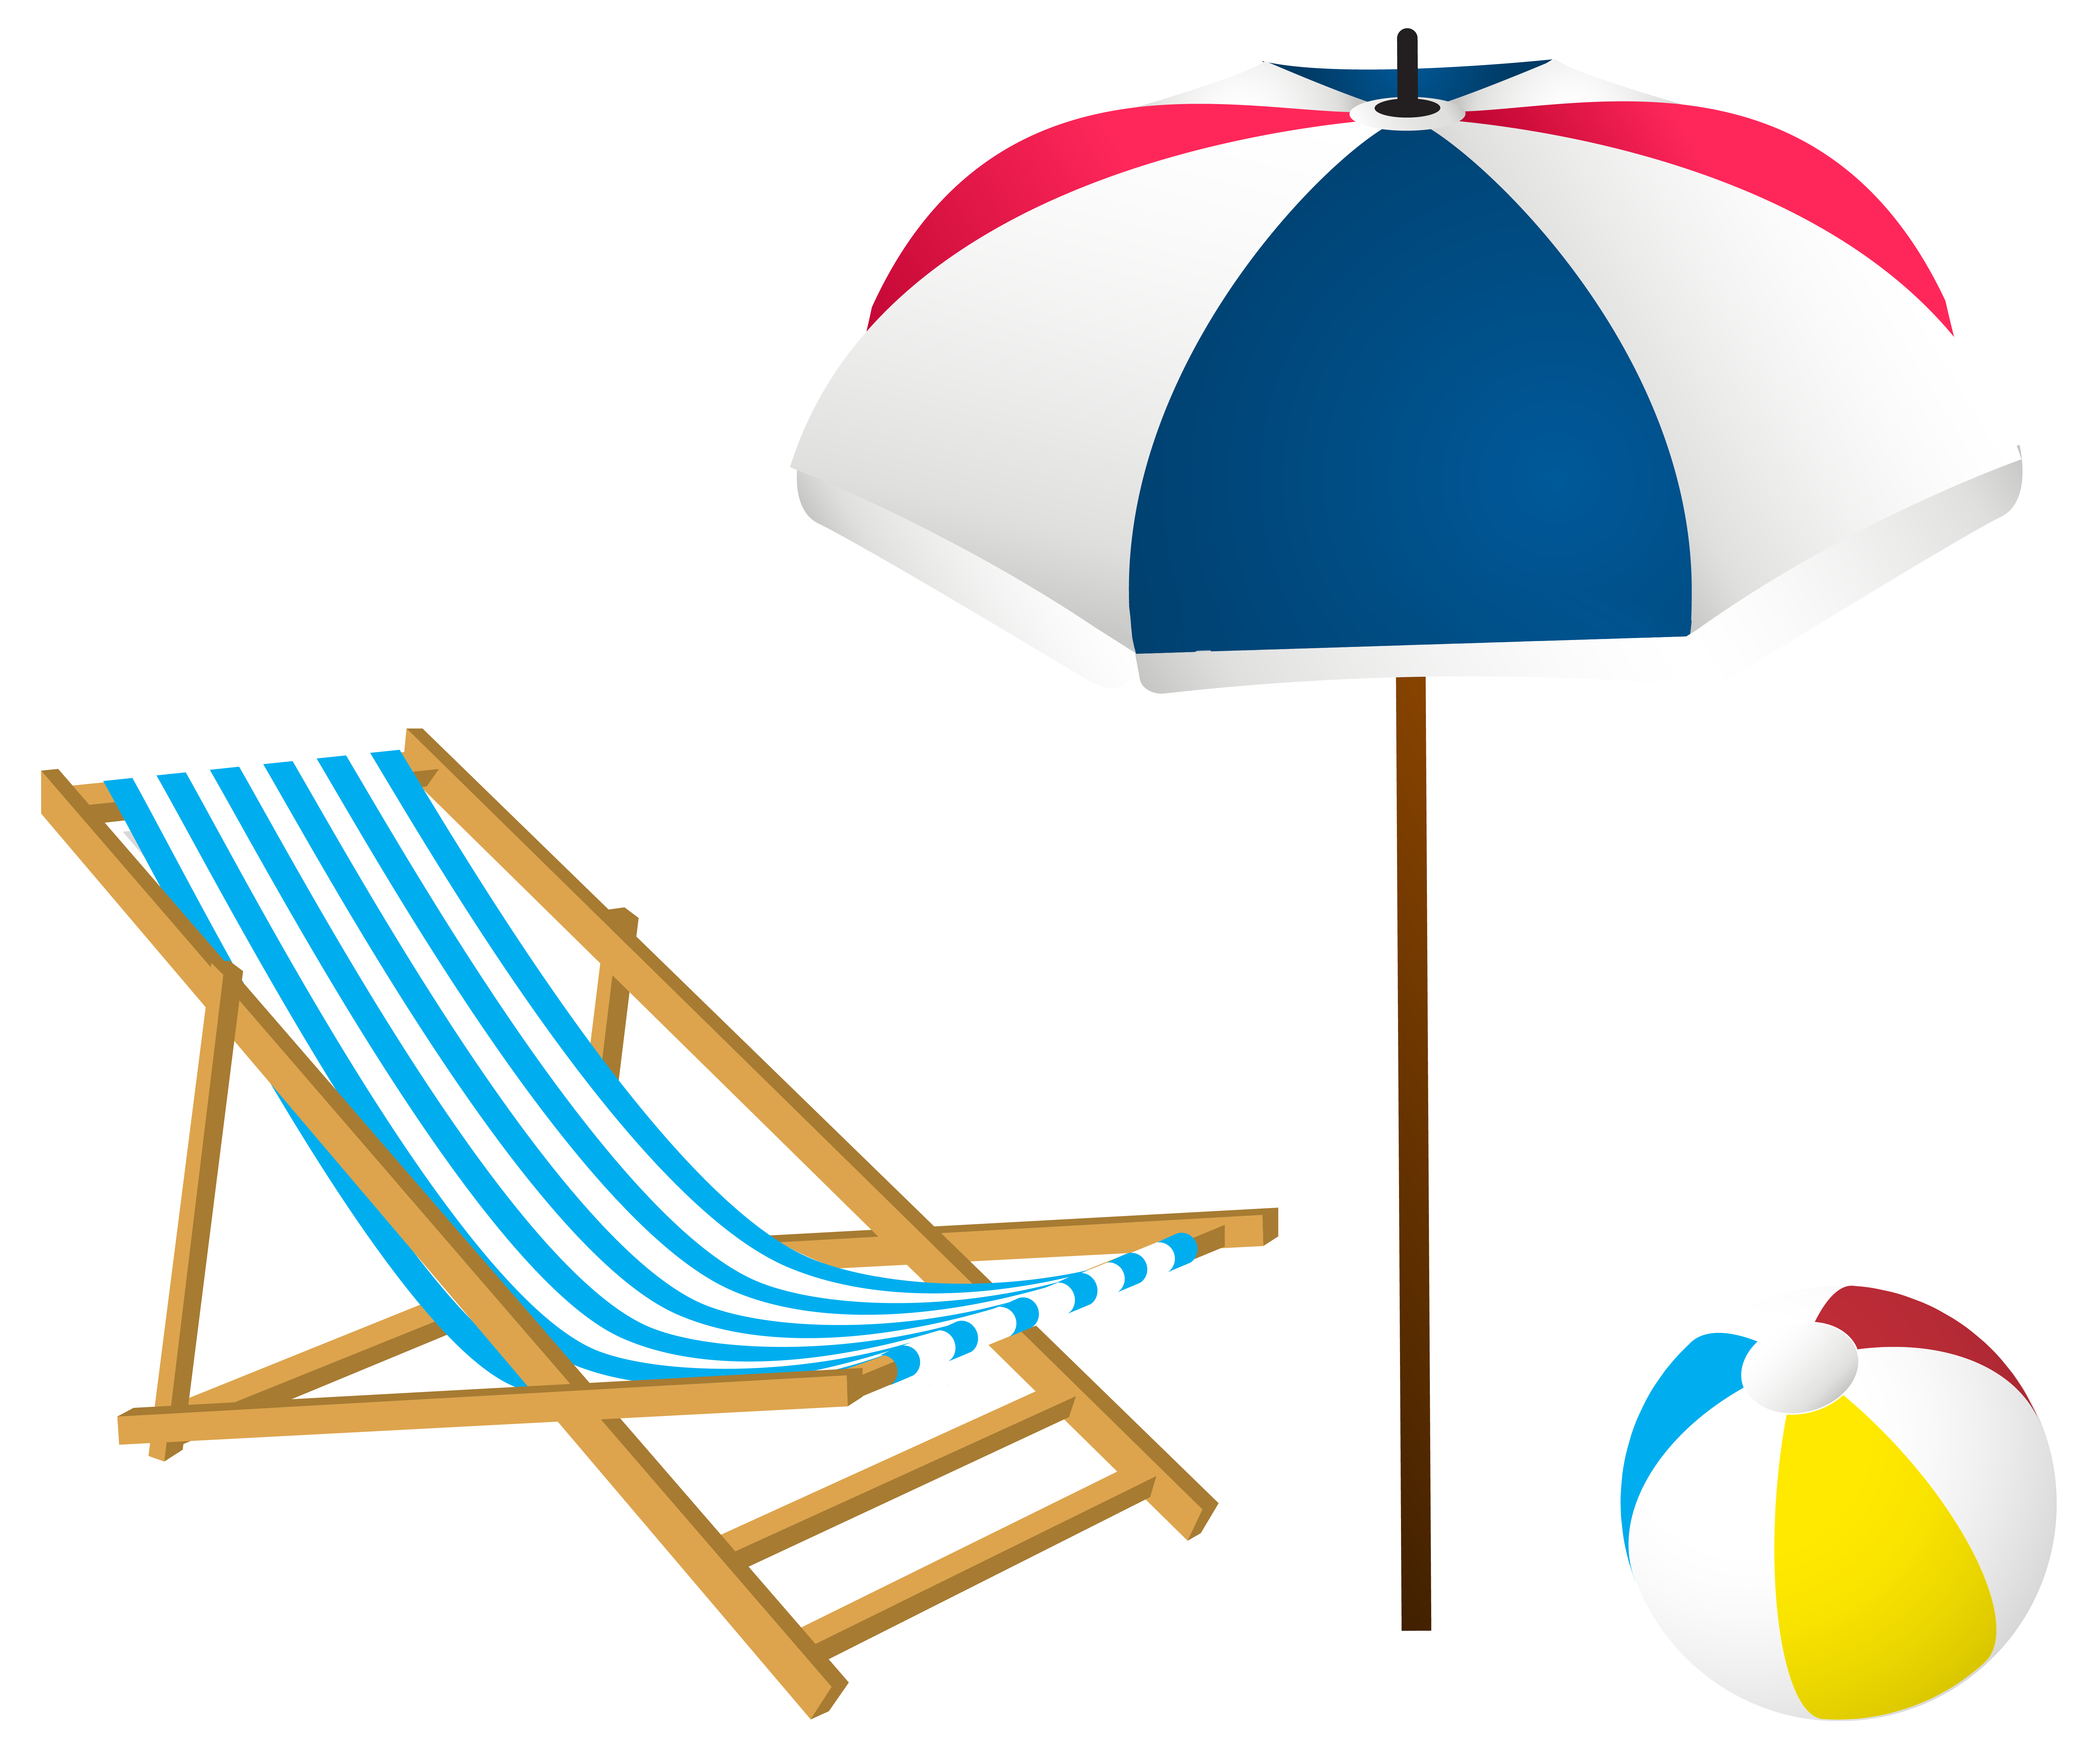 Beach clip art png. Summer set image gallery